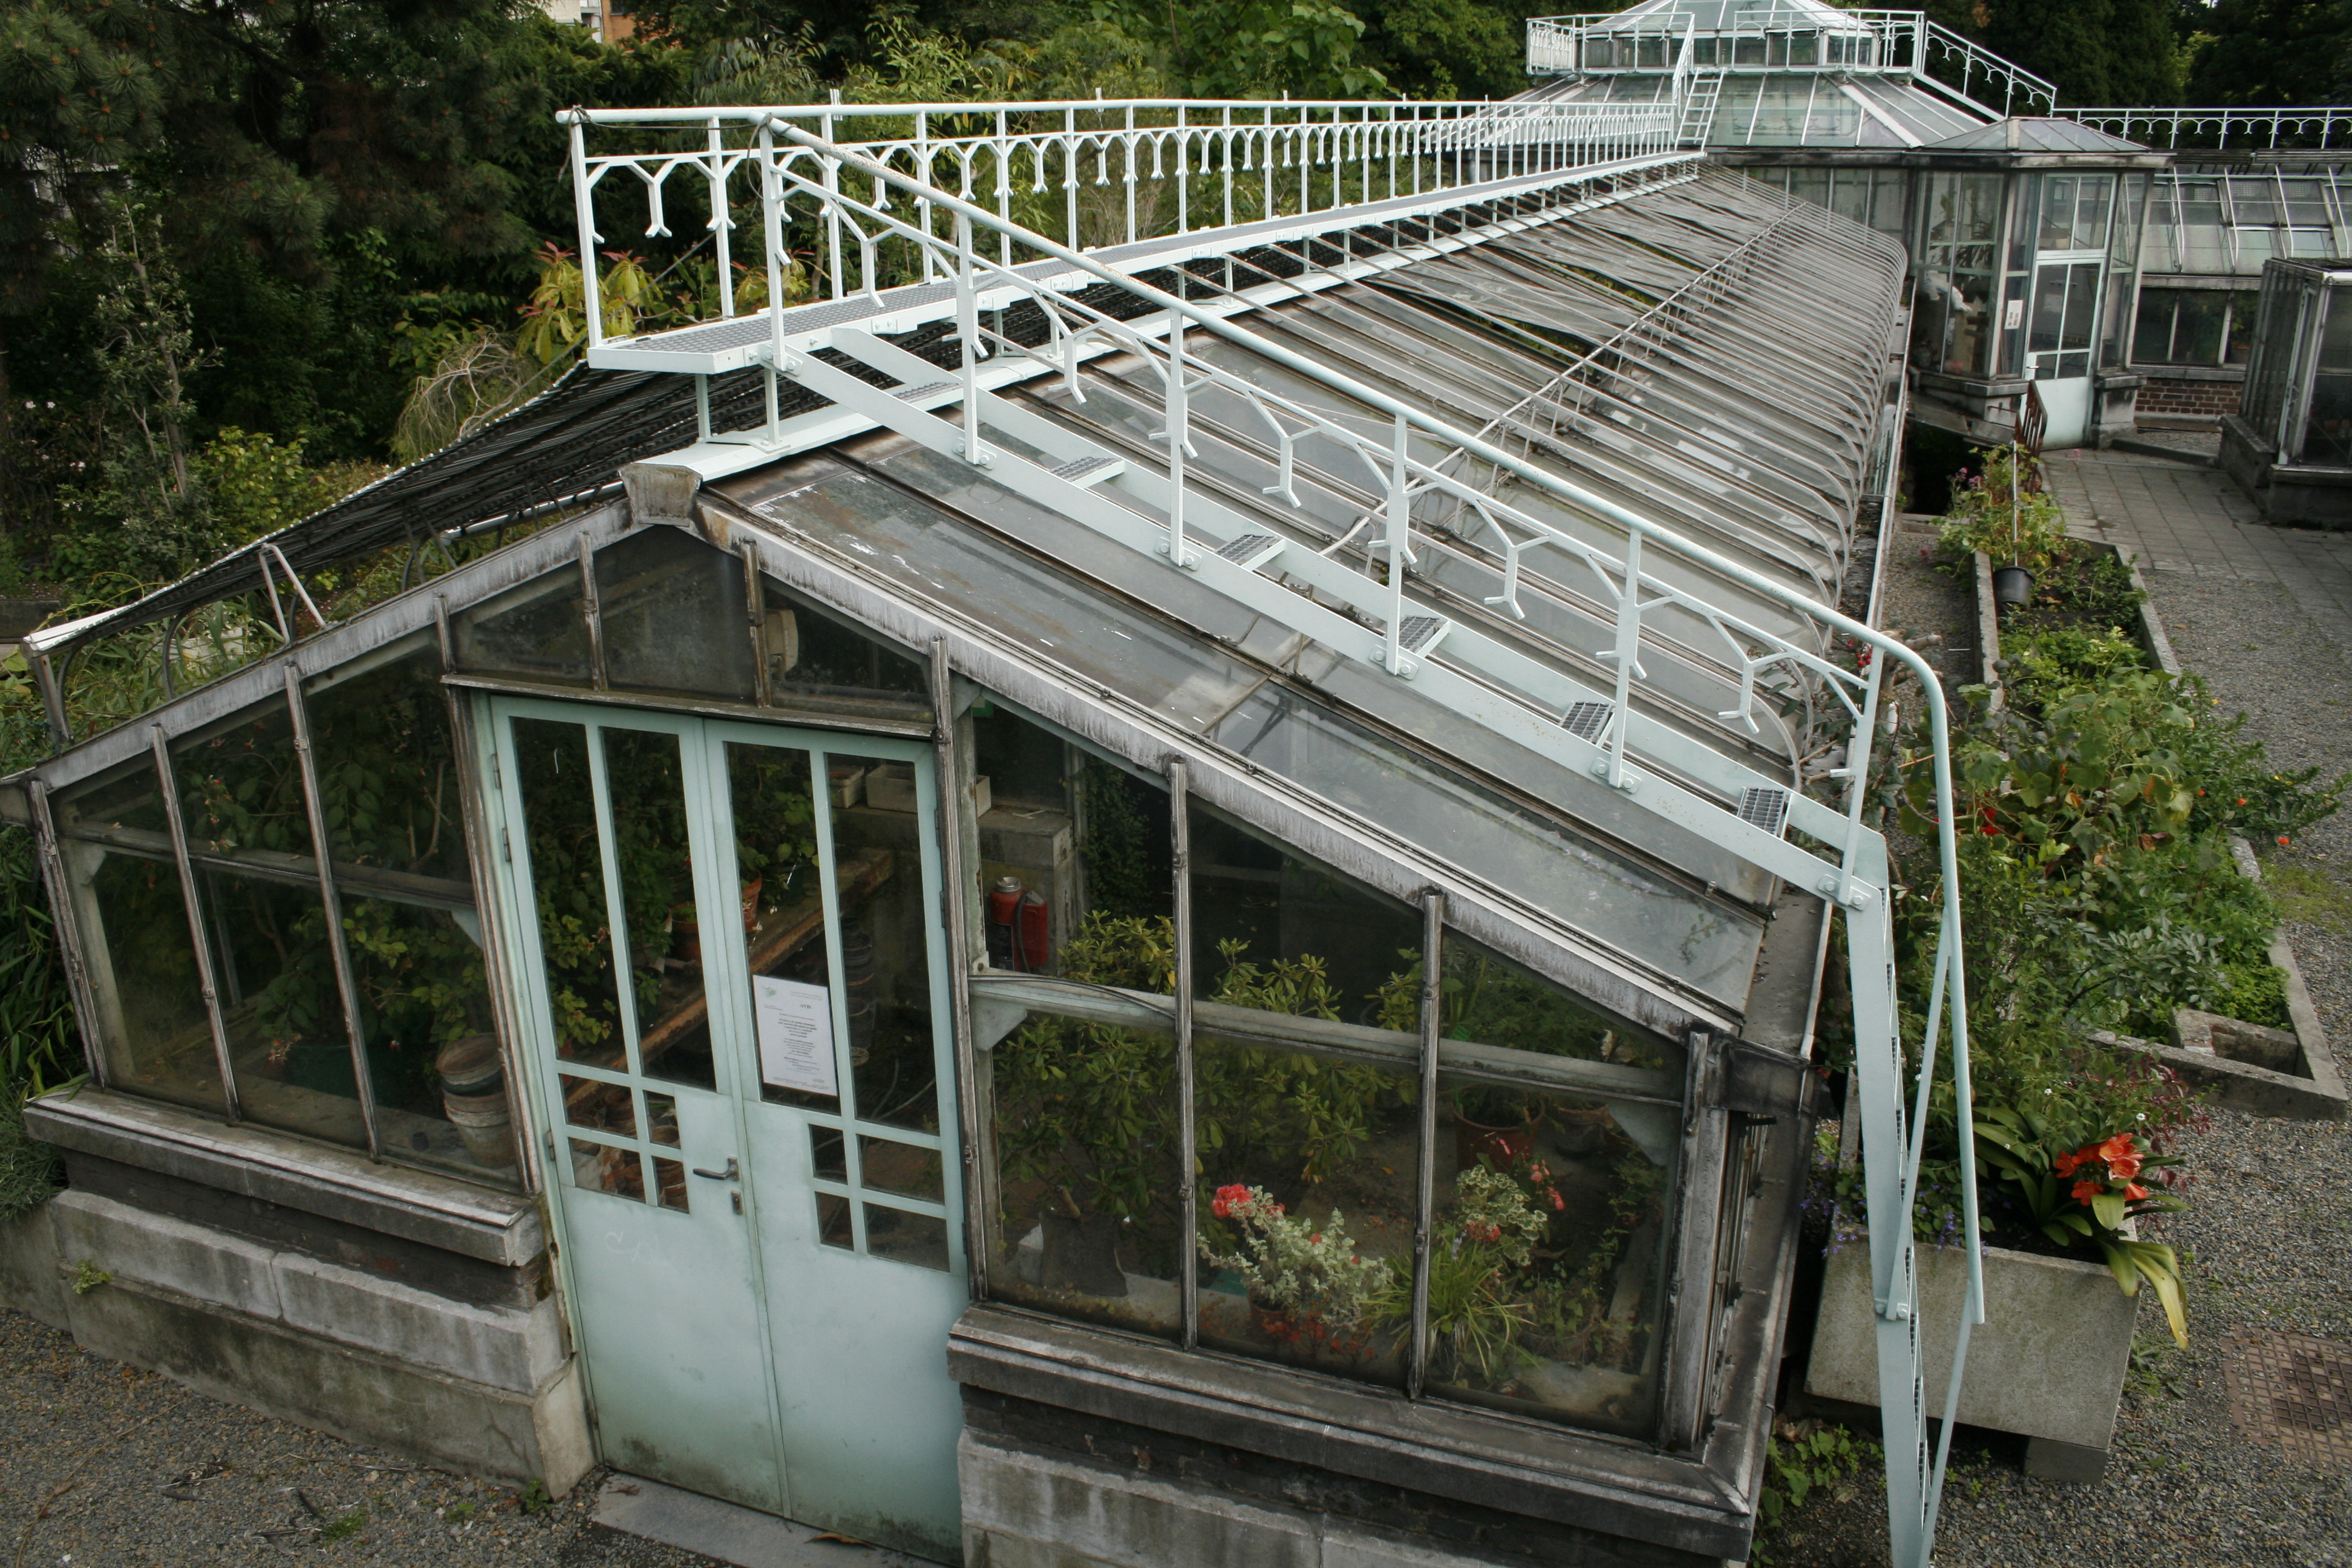 The greenhouse gold coast - Greenhouse Historic Fairholme Mansion In Newport Rhode Island New England Flowers Gardens Pinterest Mansions Rhode Island And Photos